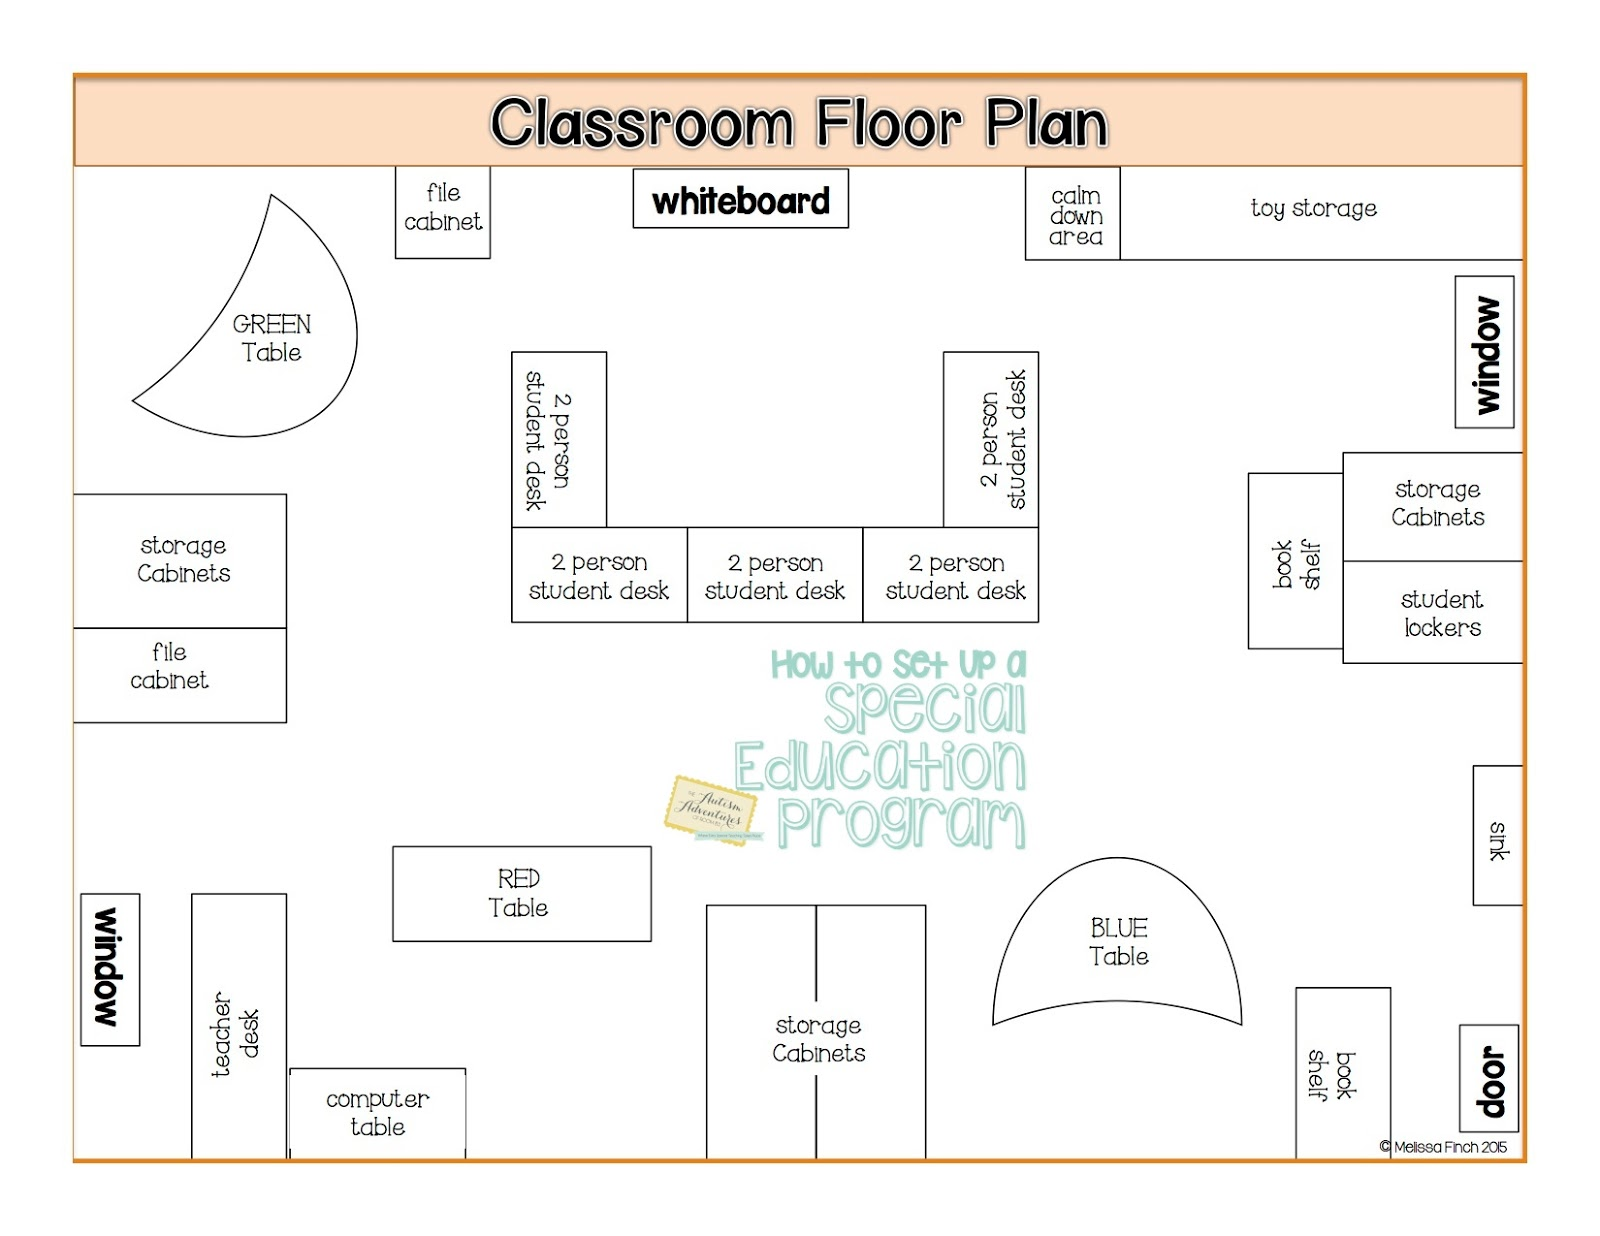 Design Your Classroom Floor Plan ~ Quot how to set up a special education program floor plans